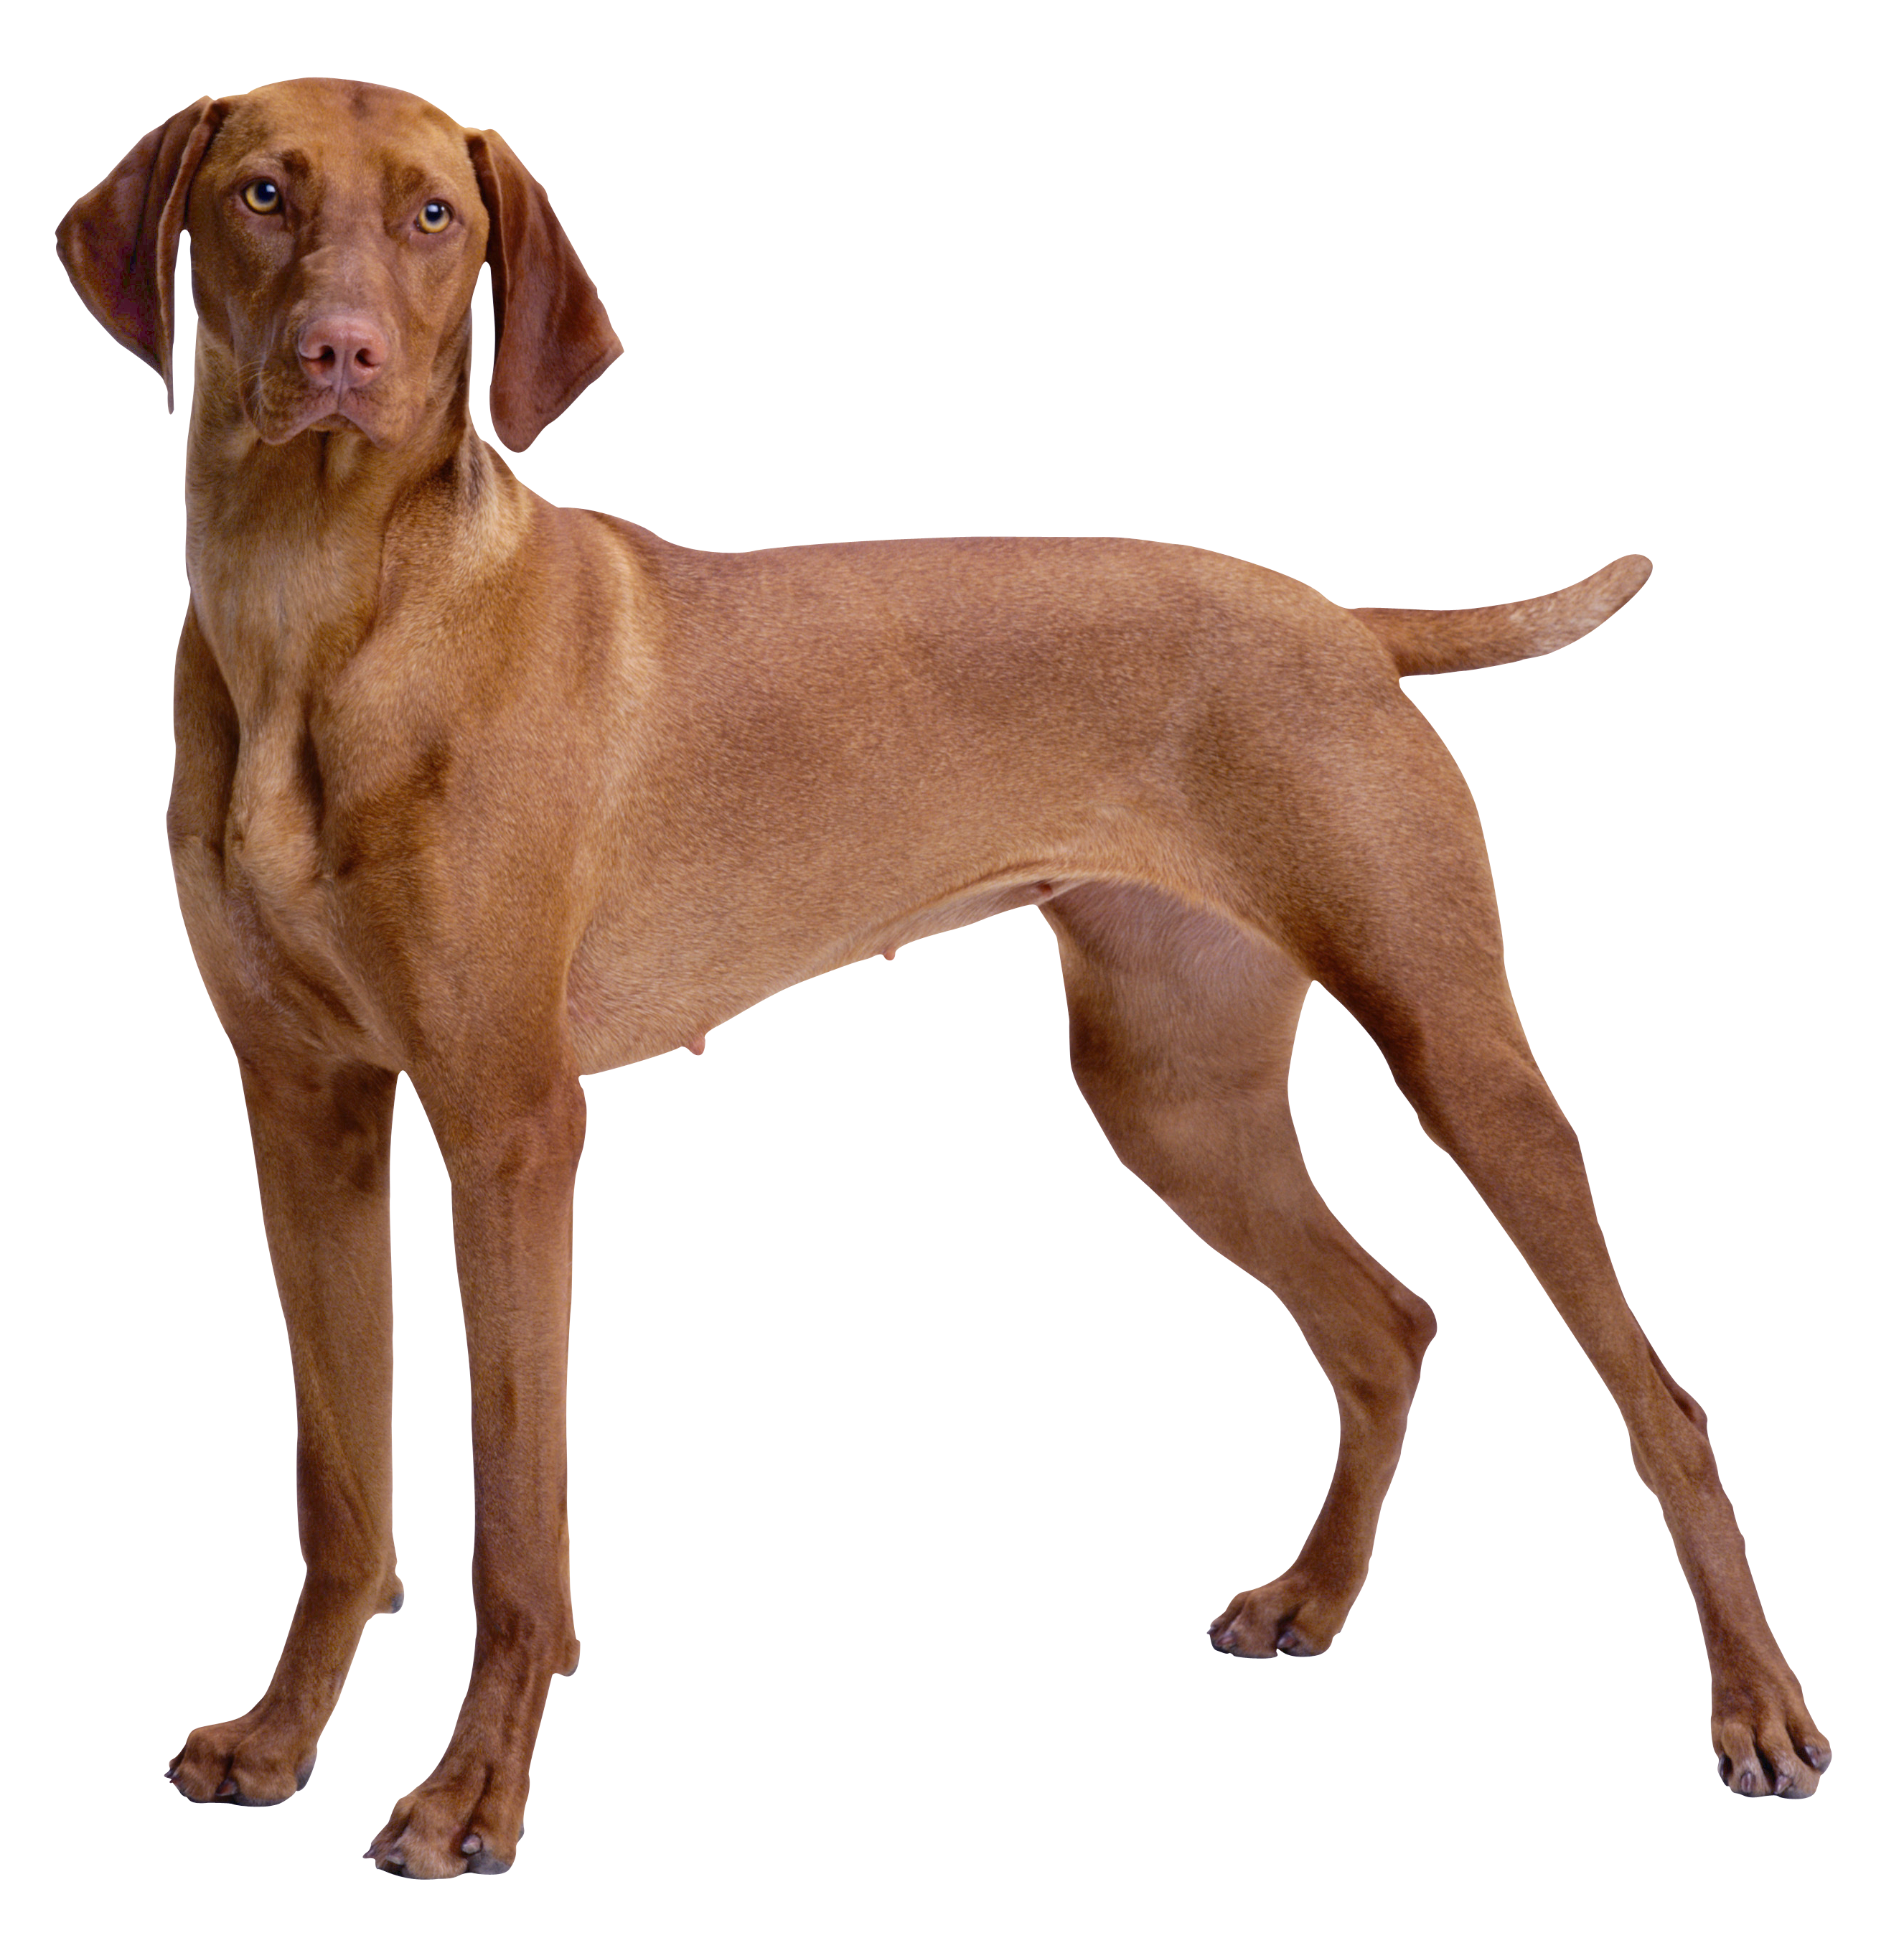 Animals png for photoshop. Brown dog clipart best